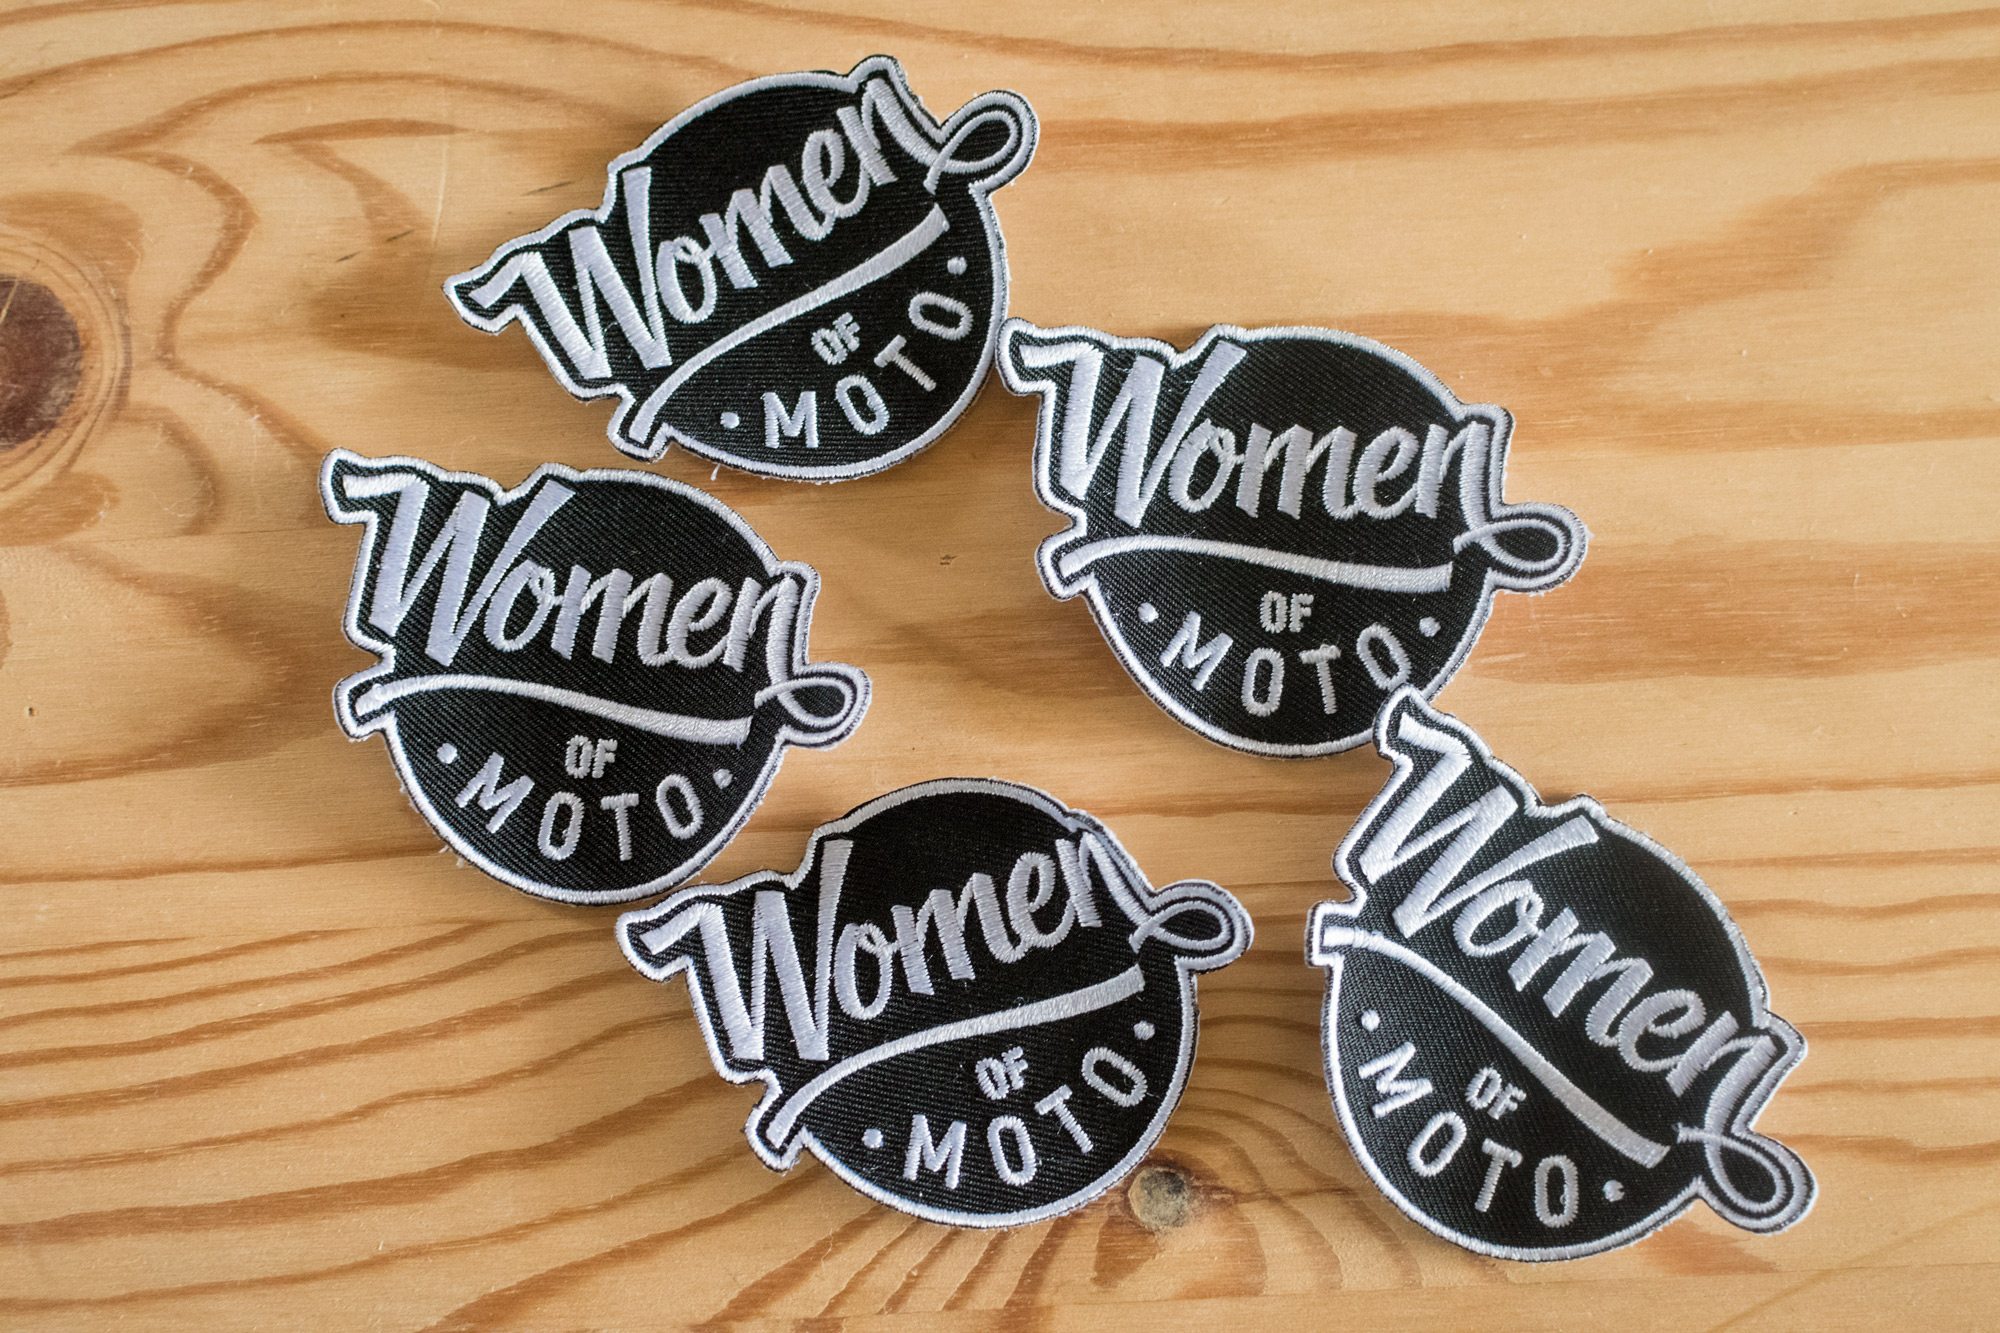 Women of Moto Patches